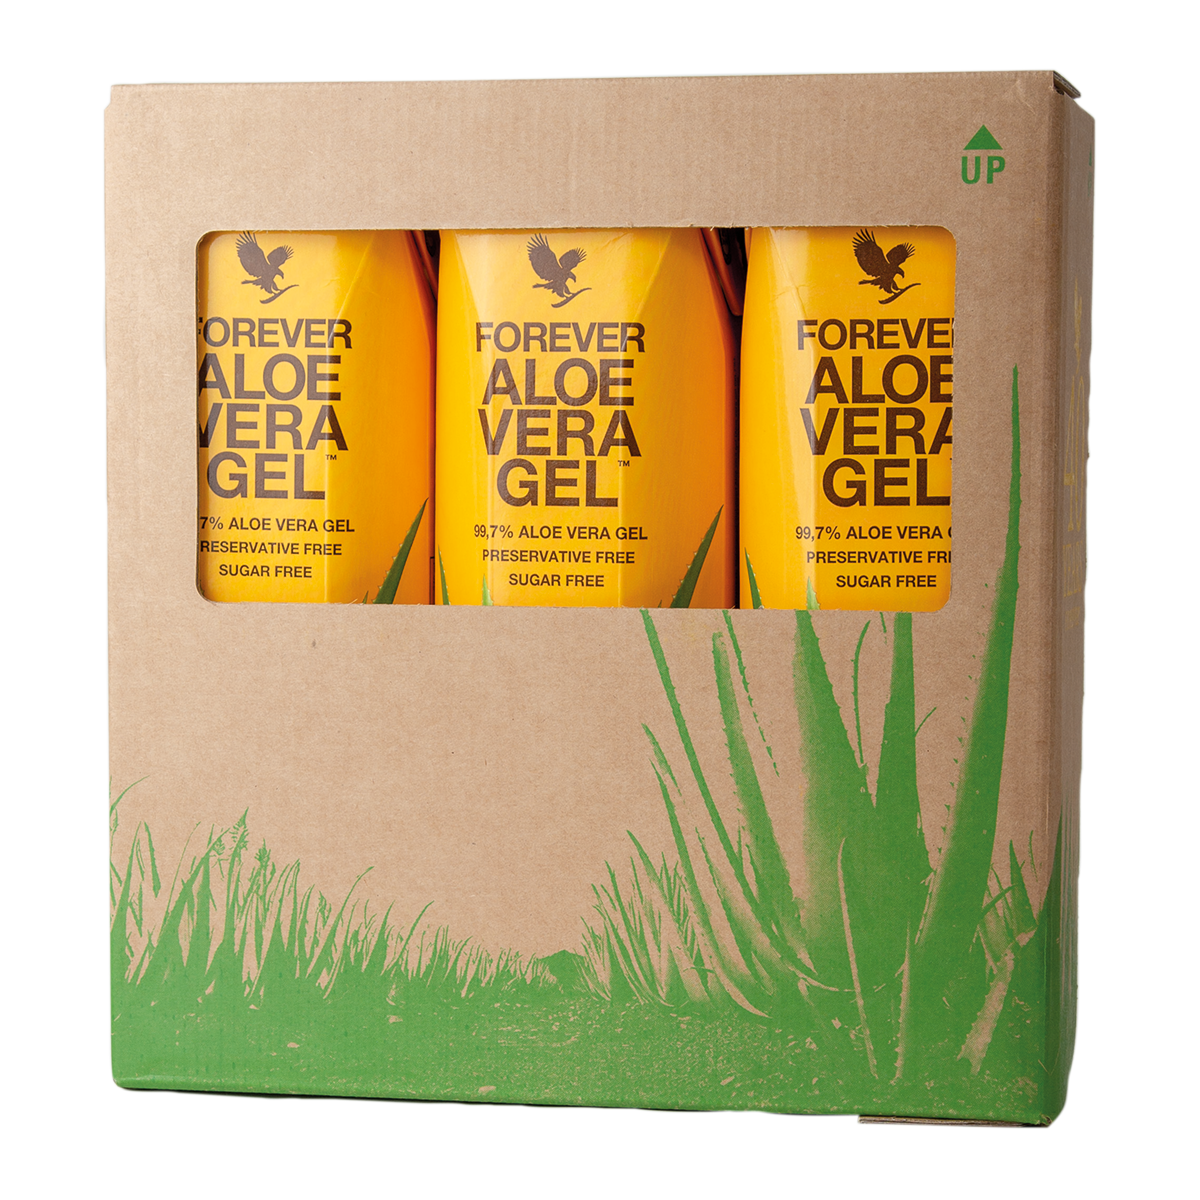 Forever Living's best-selling Aloe vera drink contains up to 99.7% pure Aloe vera gel from hand-picked Aloe vera of the highest quality.